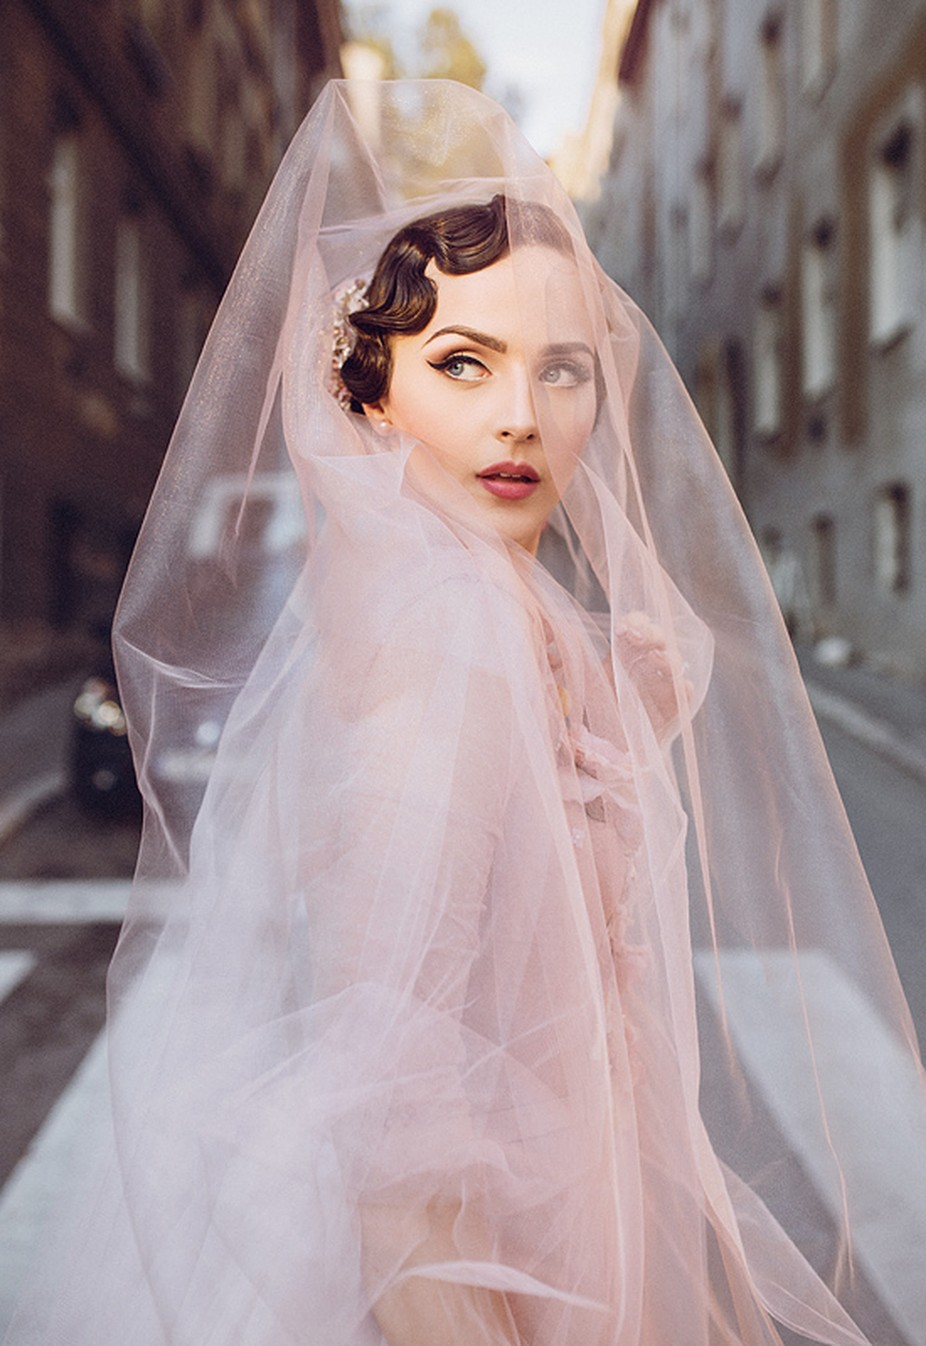 Bride by NinaMasic - Weddings And Fashion Photo Contest